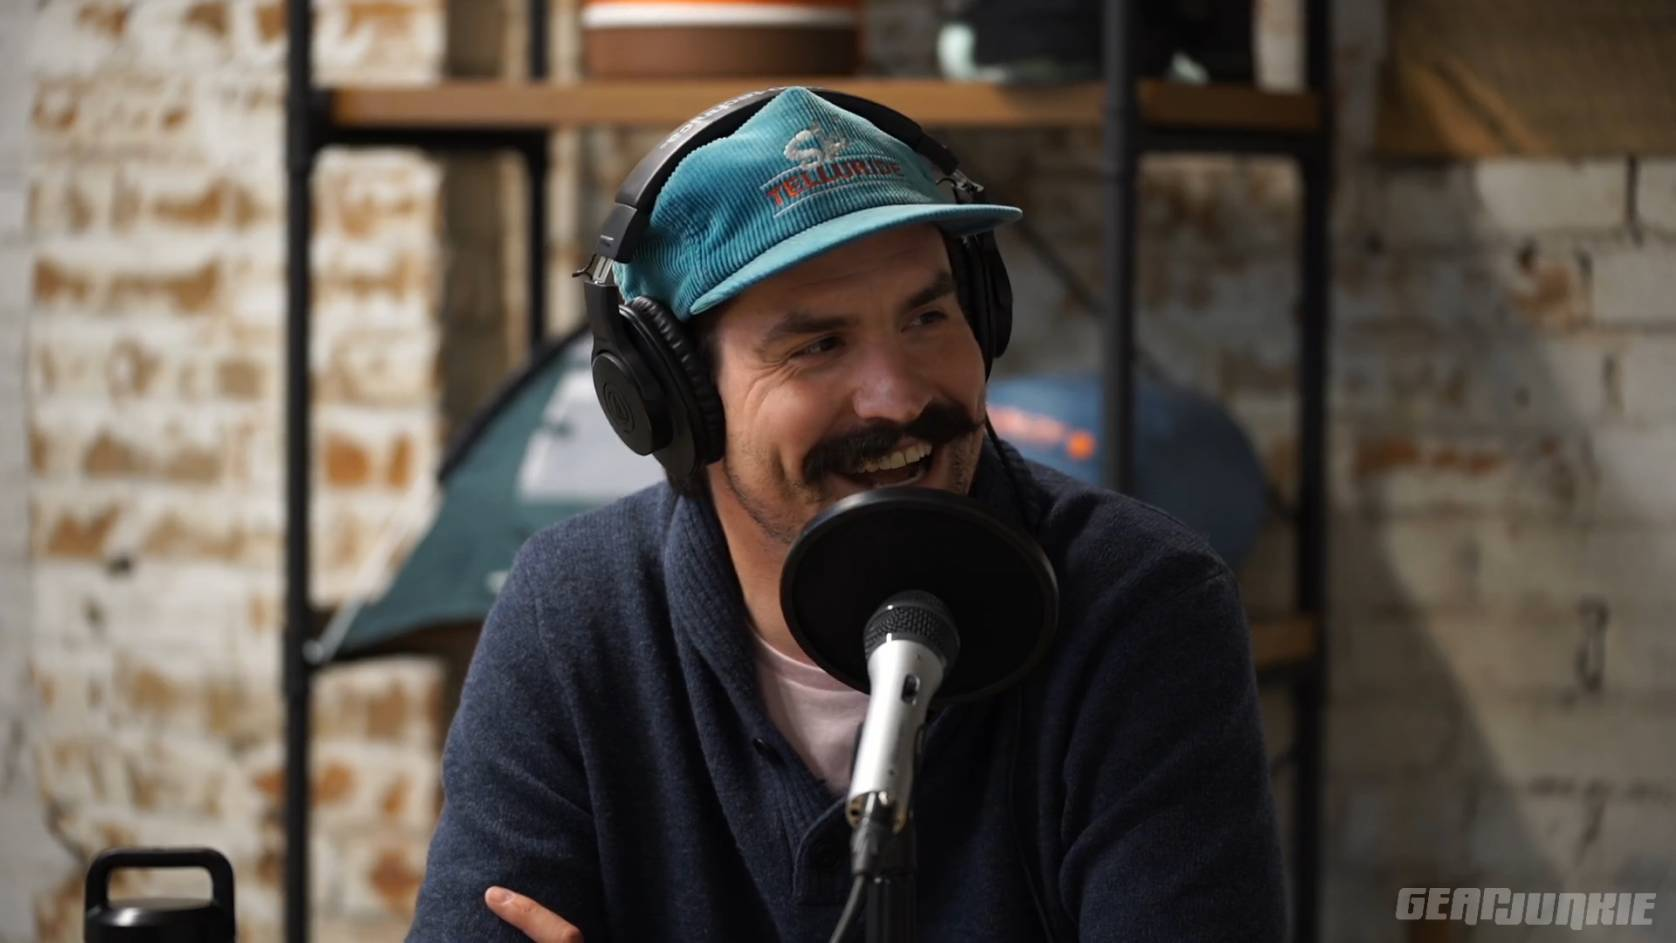 GearJunkie Podcast Episode 7: More Than Just a Great Mustache - Paddy OConnell